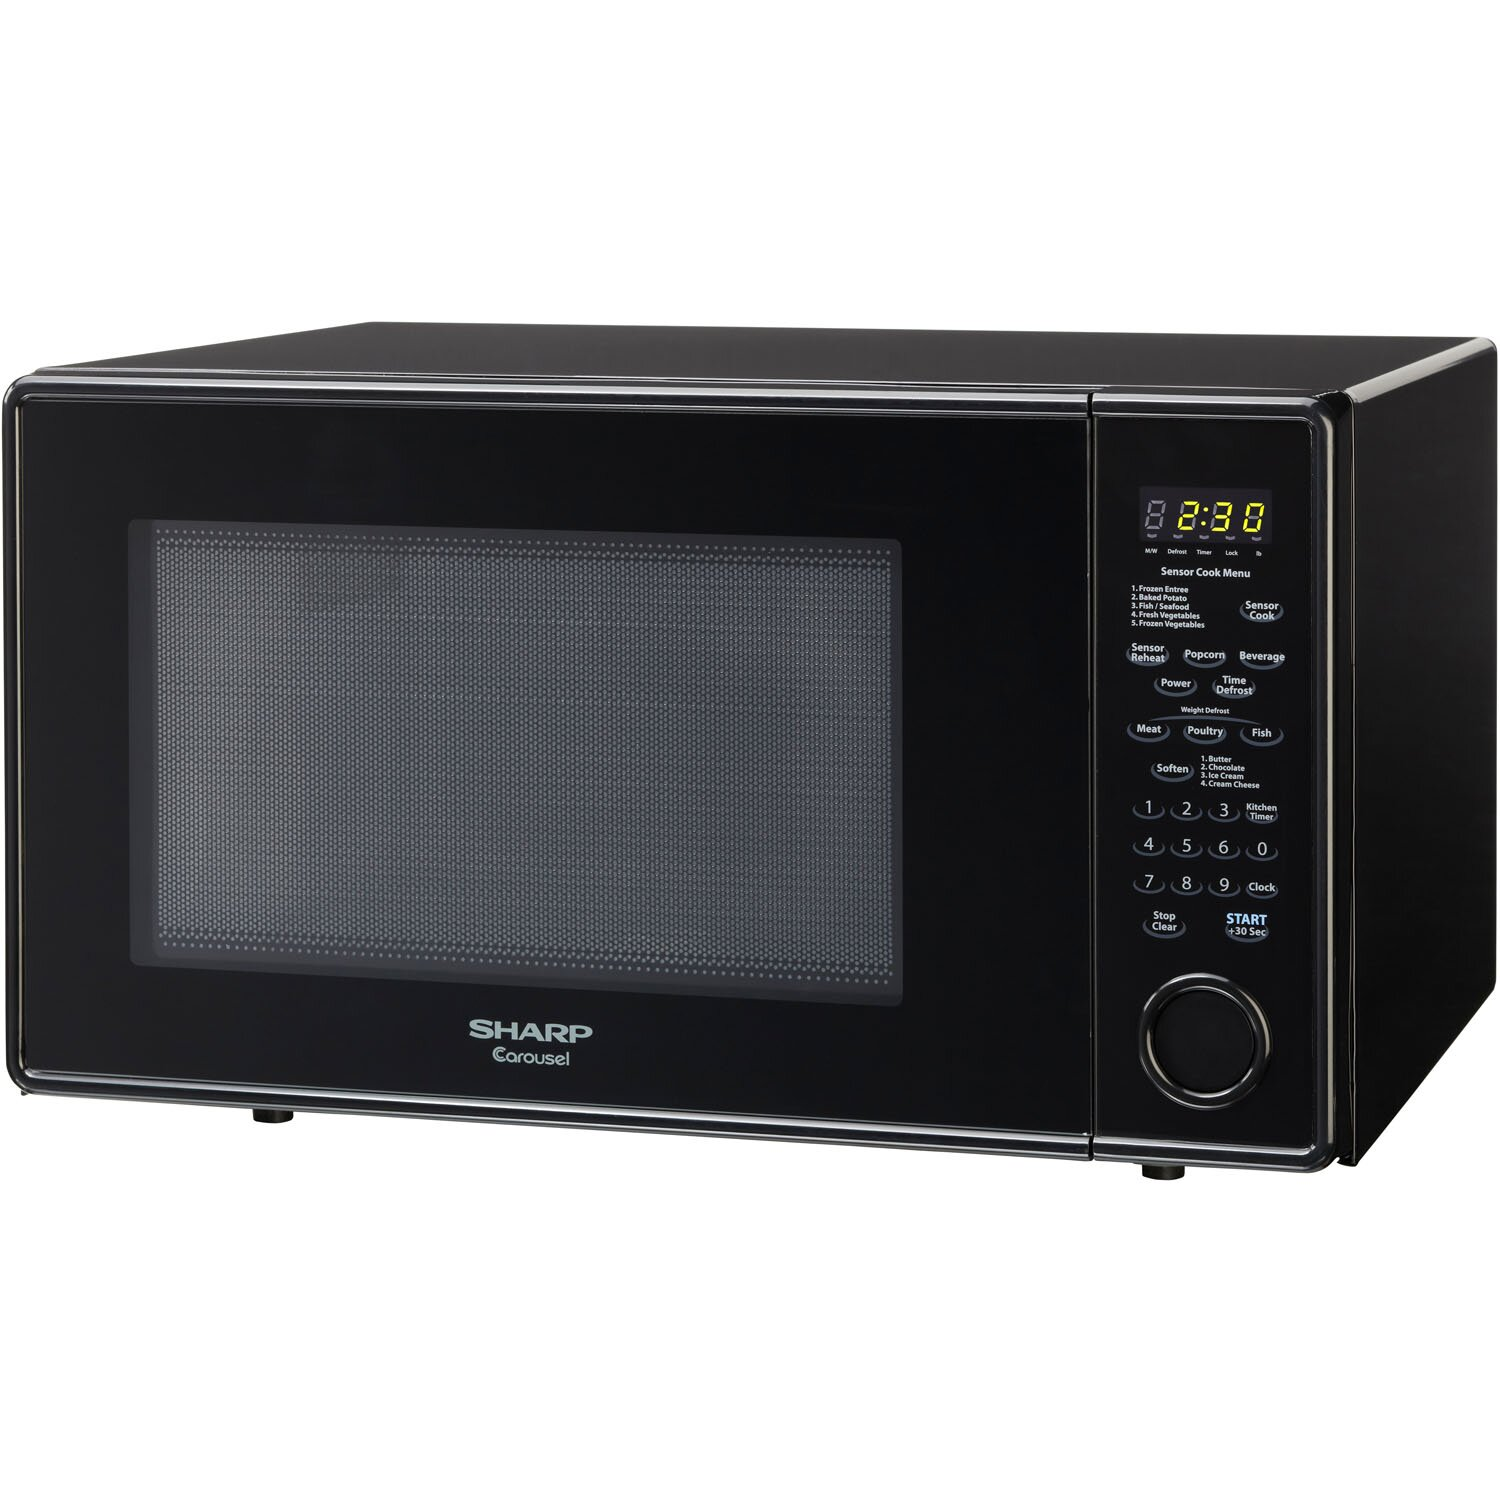 Countertop Microwave Sharp : Cu. Ft. 1100W Countertop Microwave by Sharp